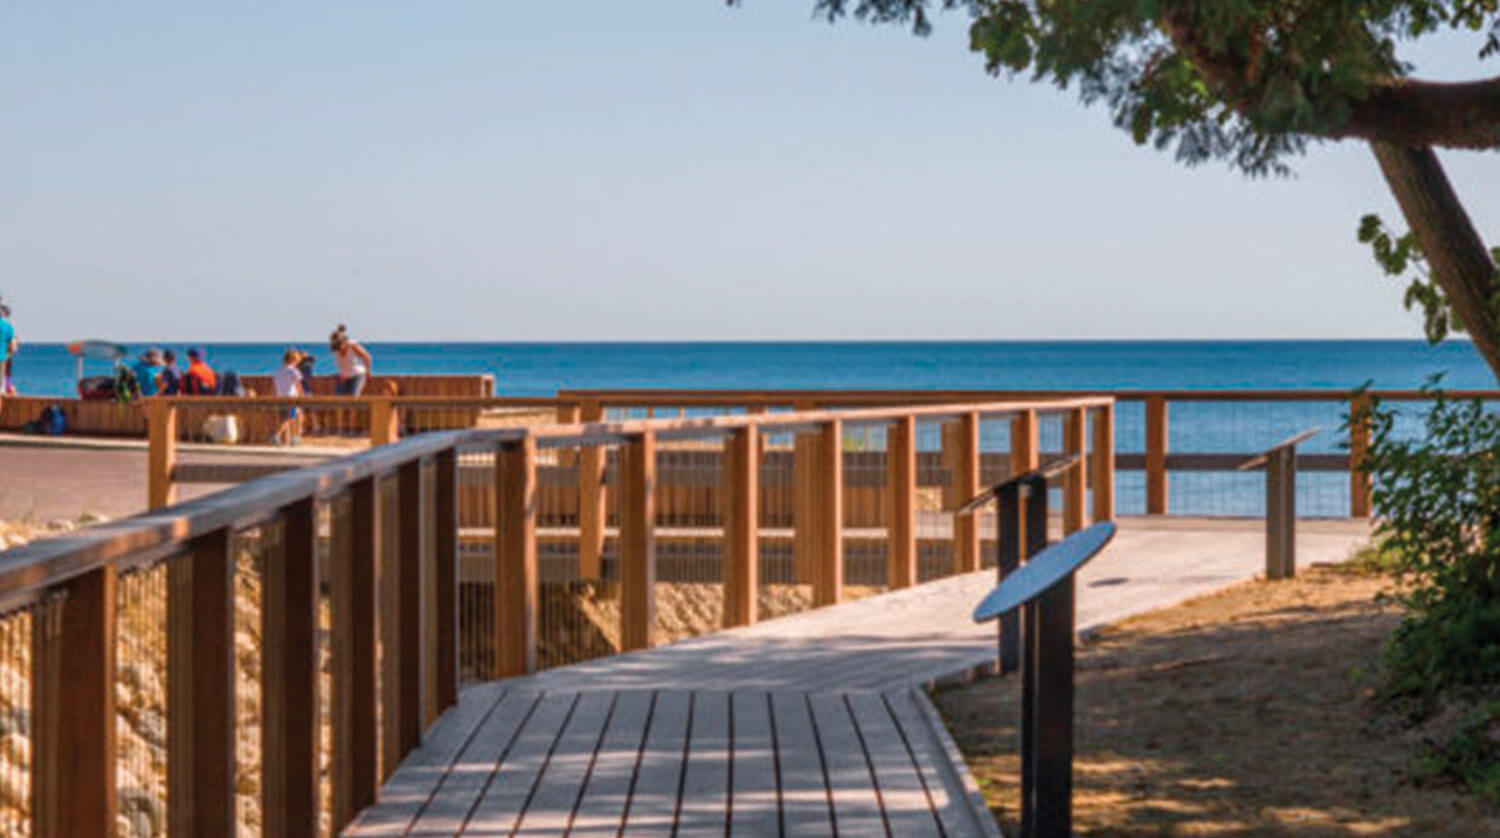 Park District of Highland Park – Rosewood Beach Development deck